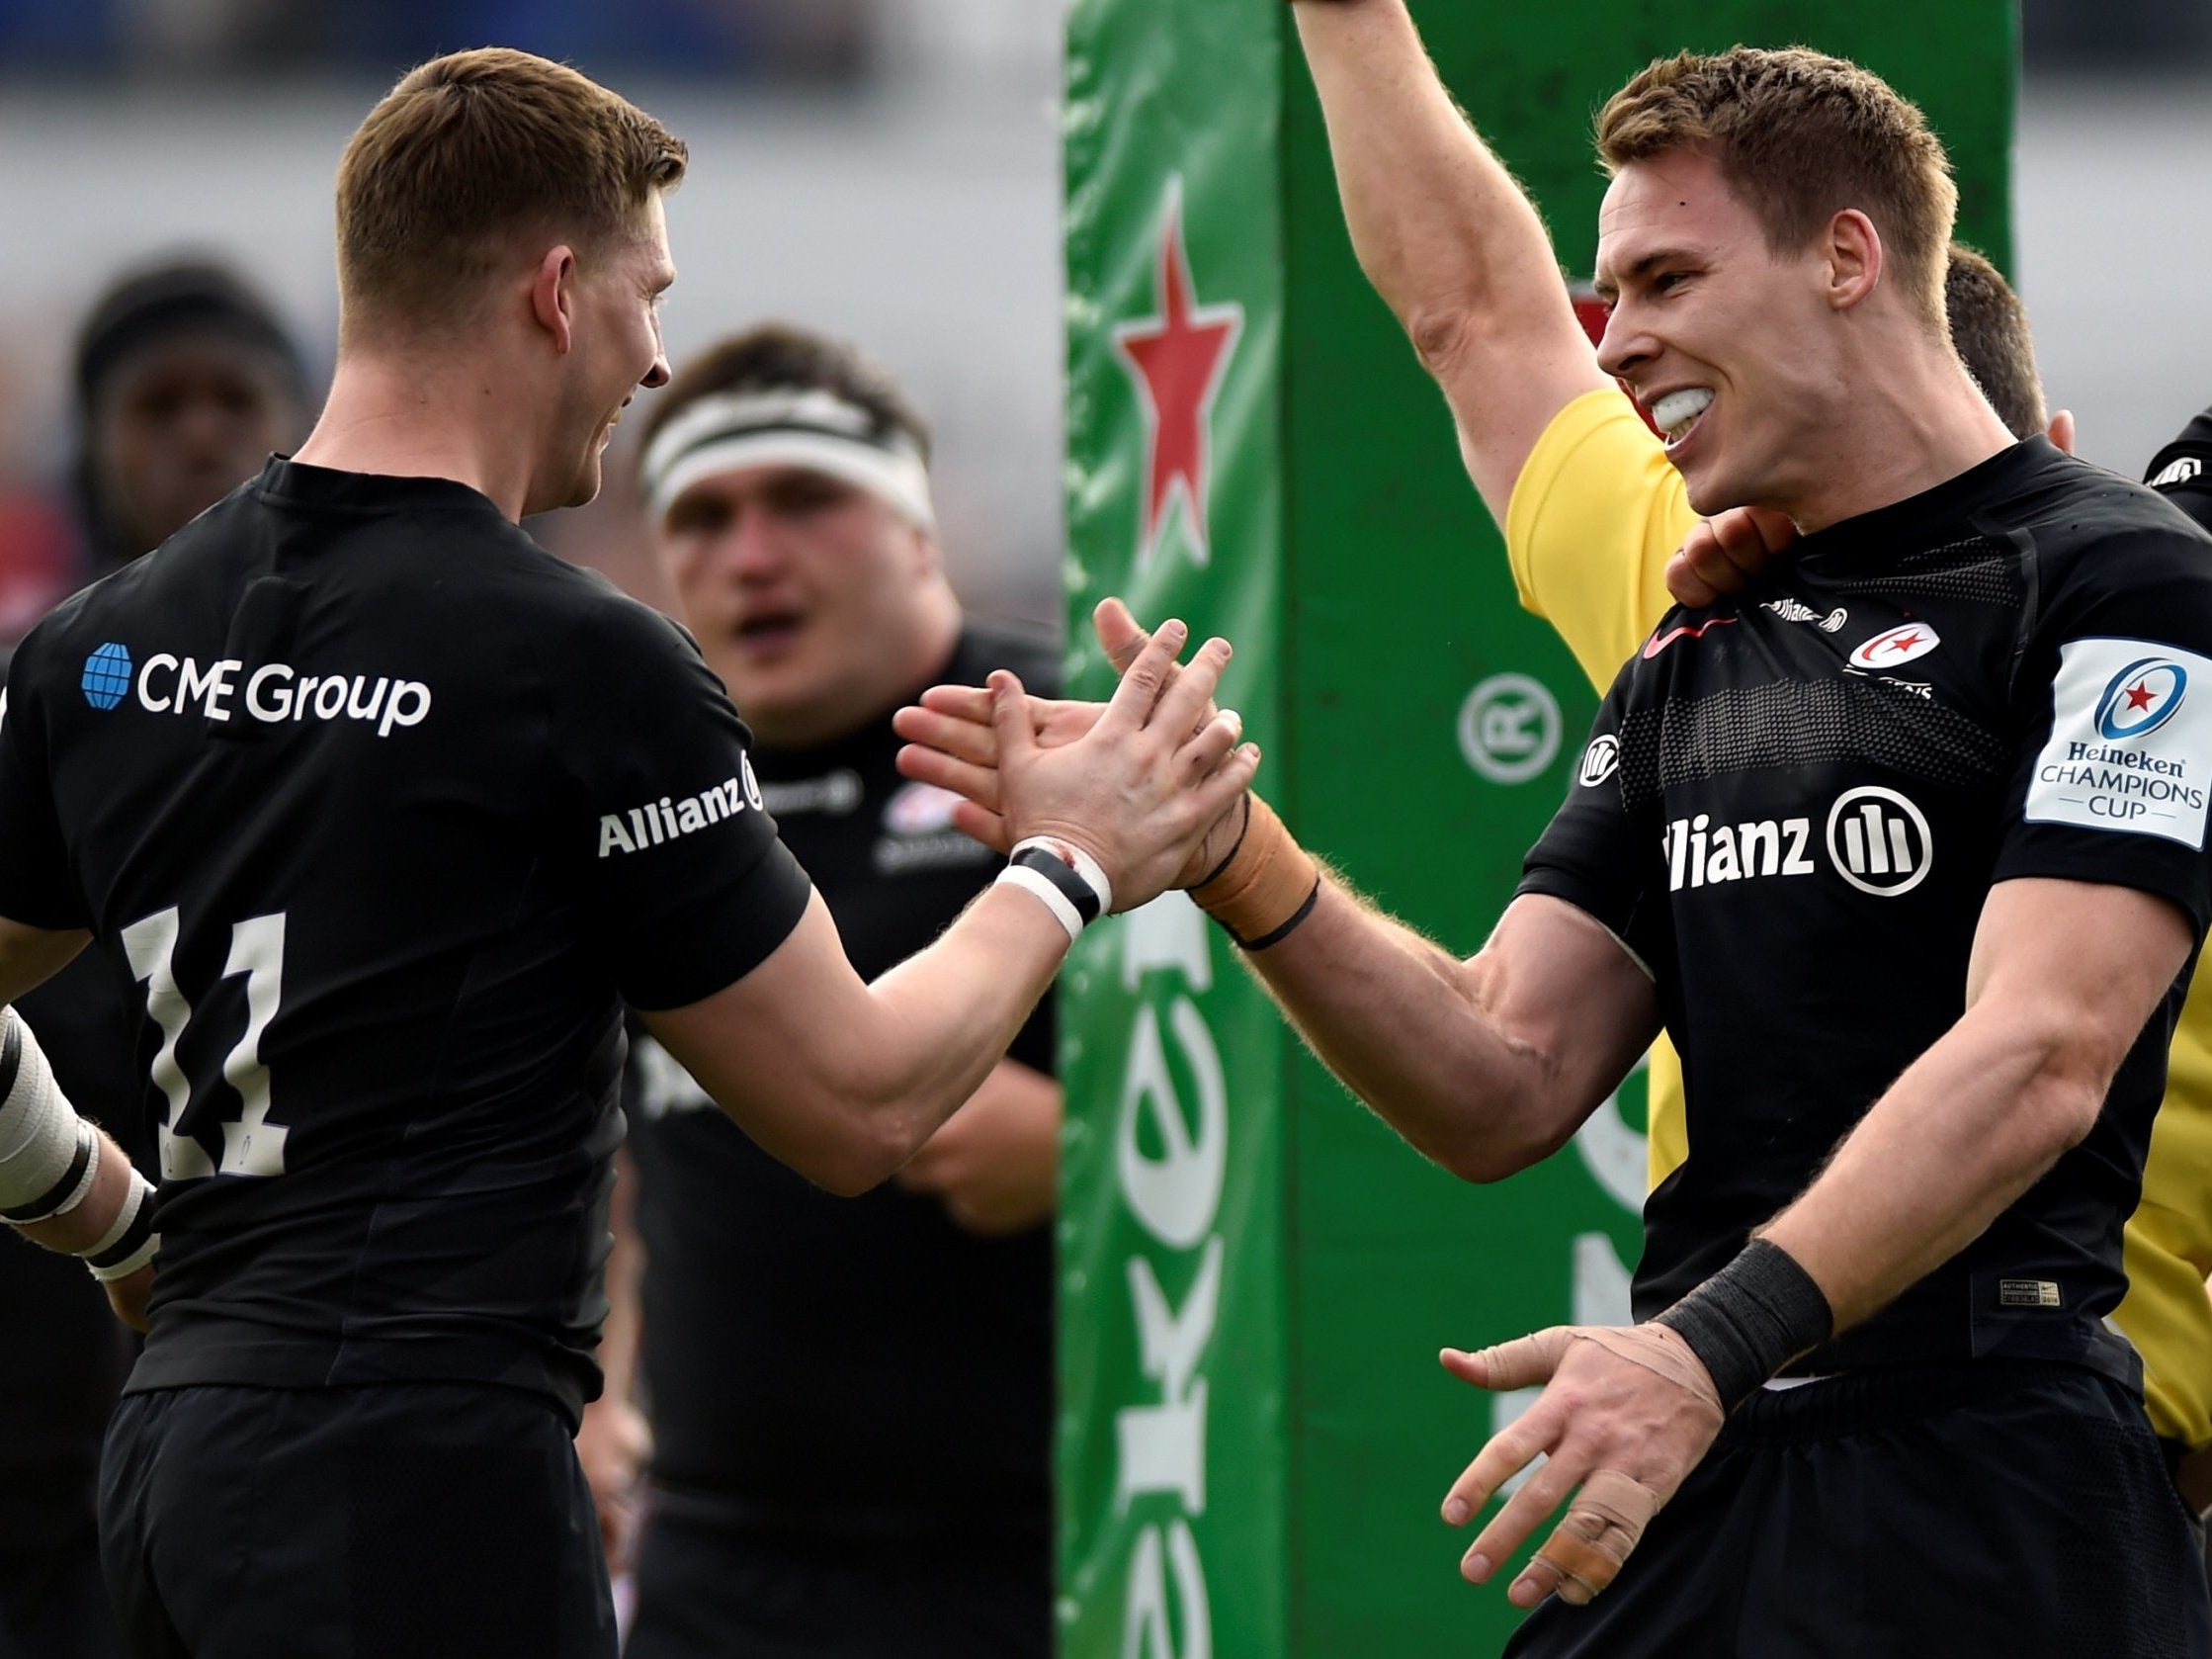 Champions Cup: Outmuscled, outgunned and outclassed - Saracens show why they remain favourites